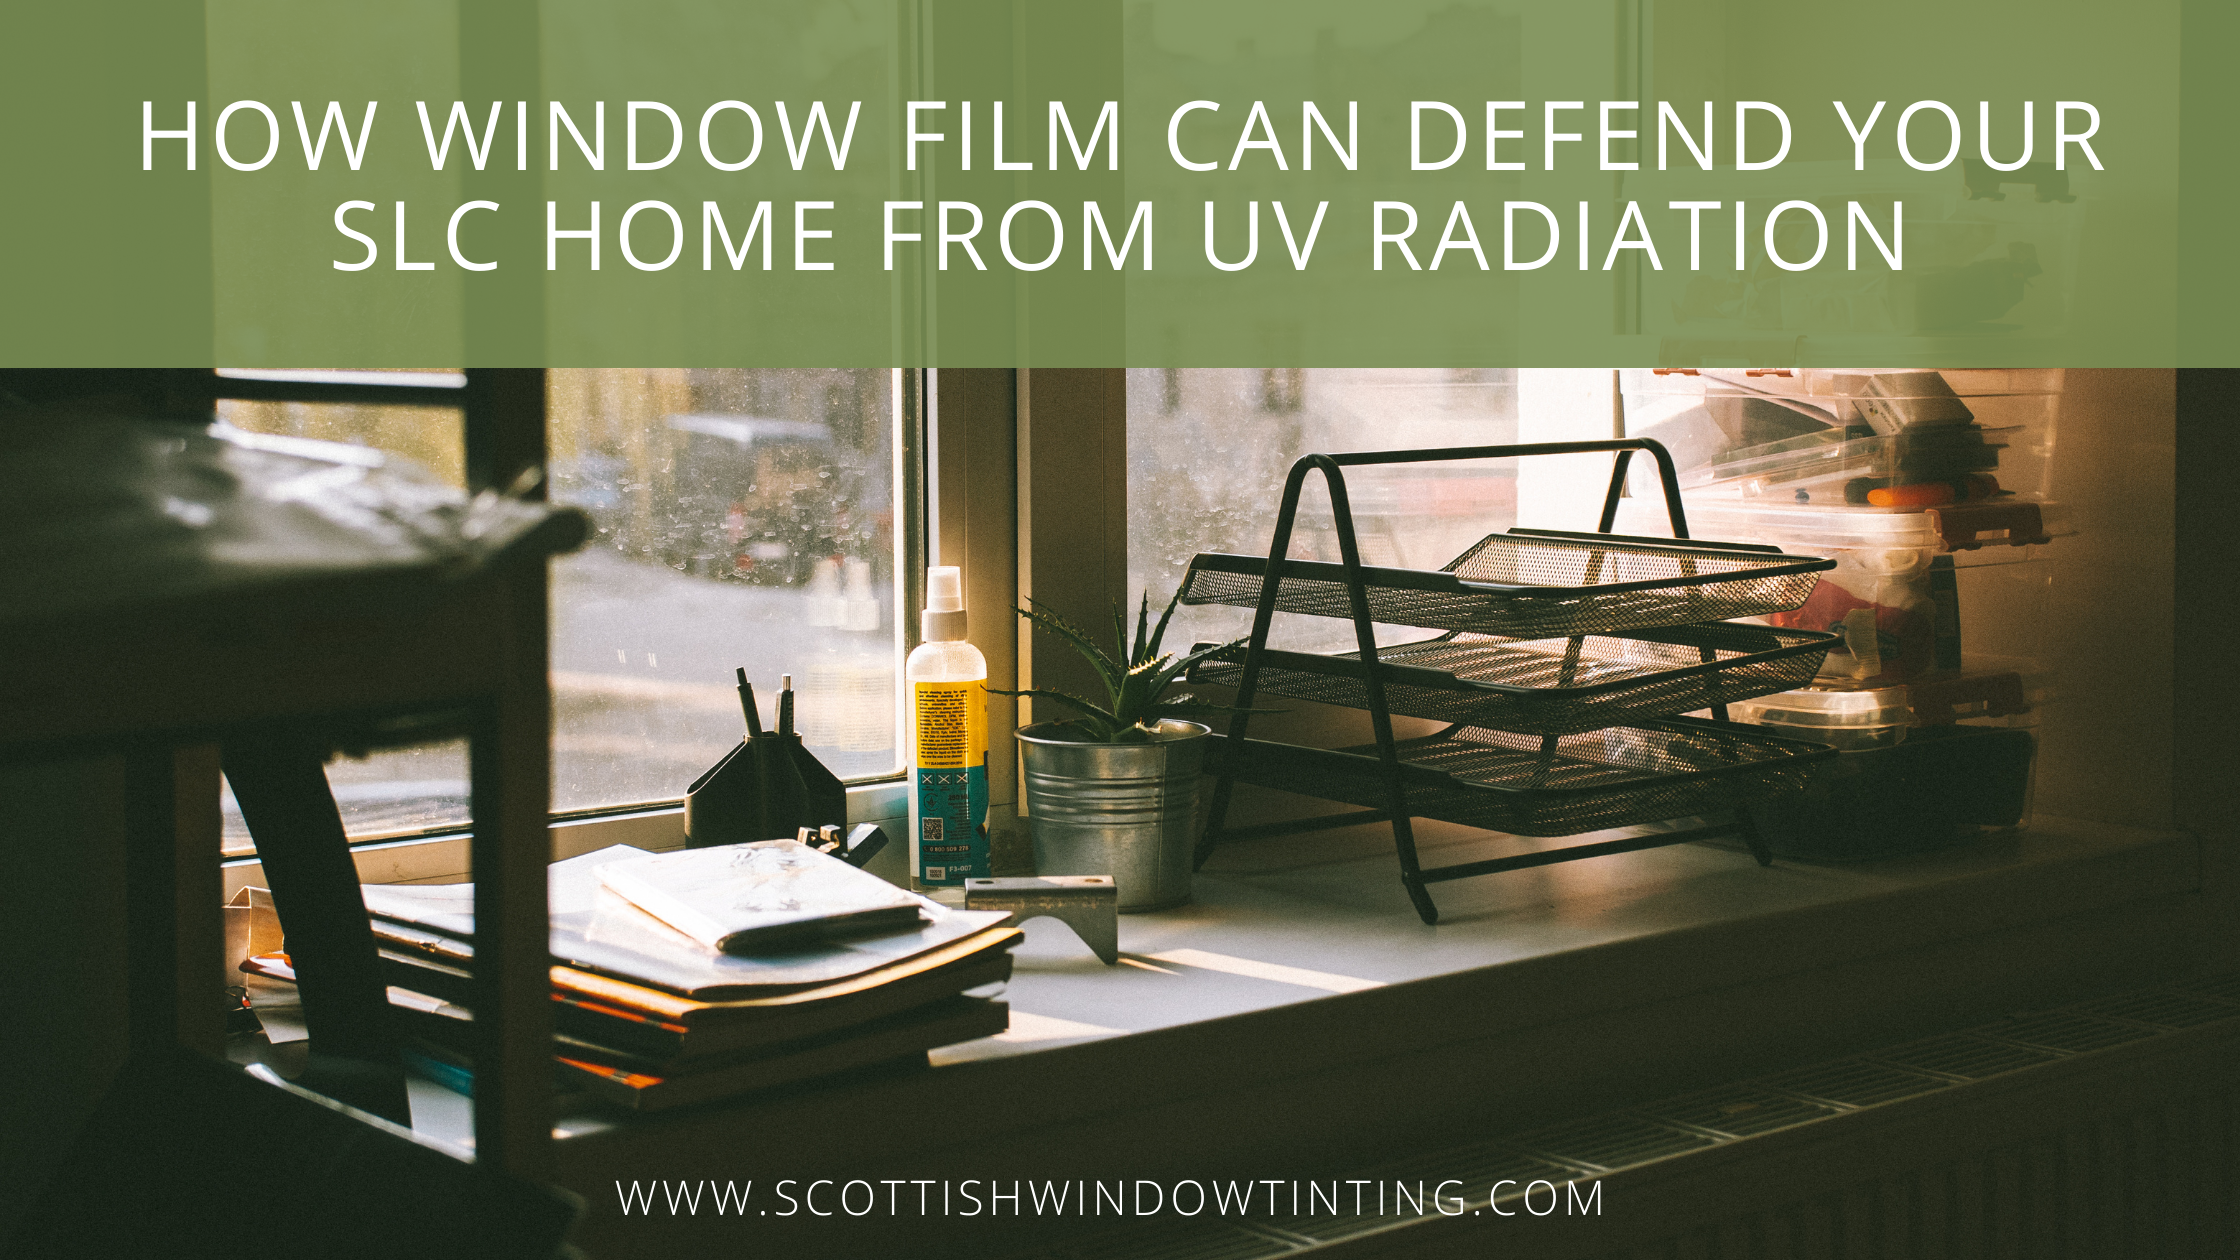 How Window Film Can Defend Your Salt Lake City Home from UV Radiation